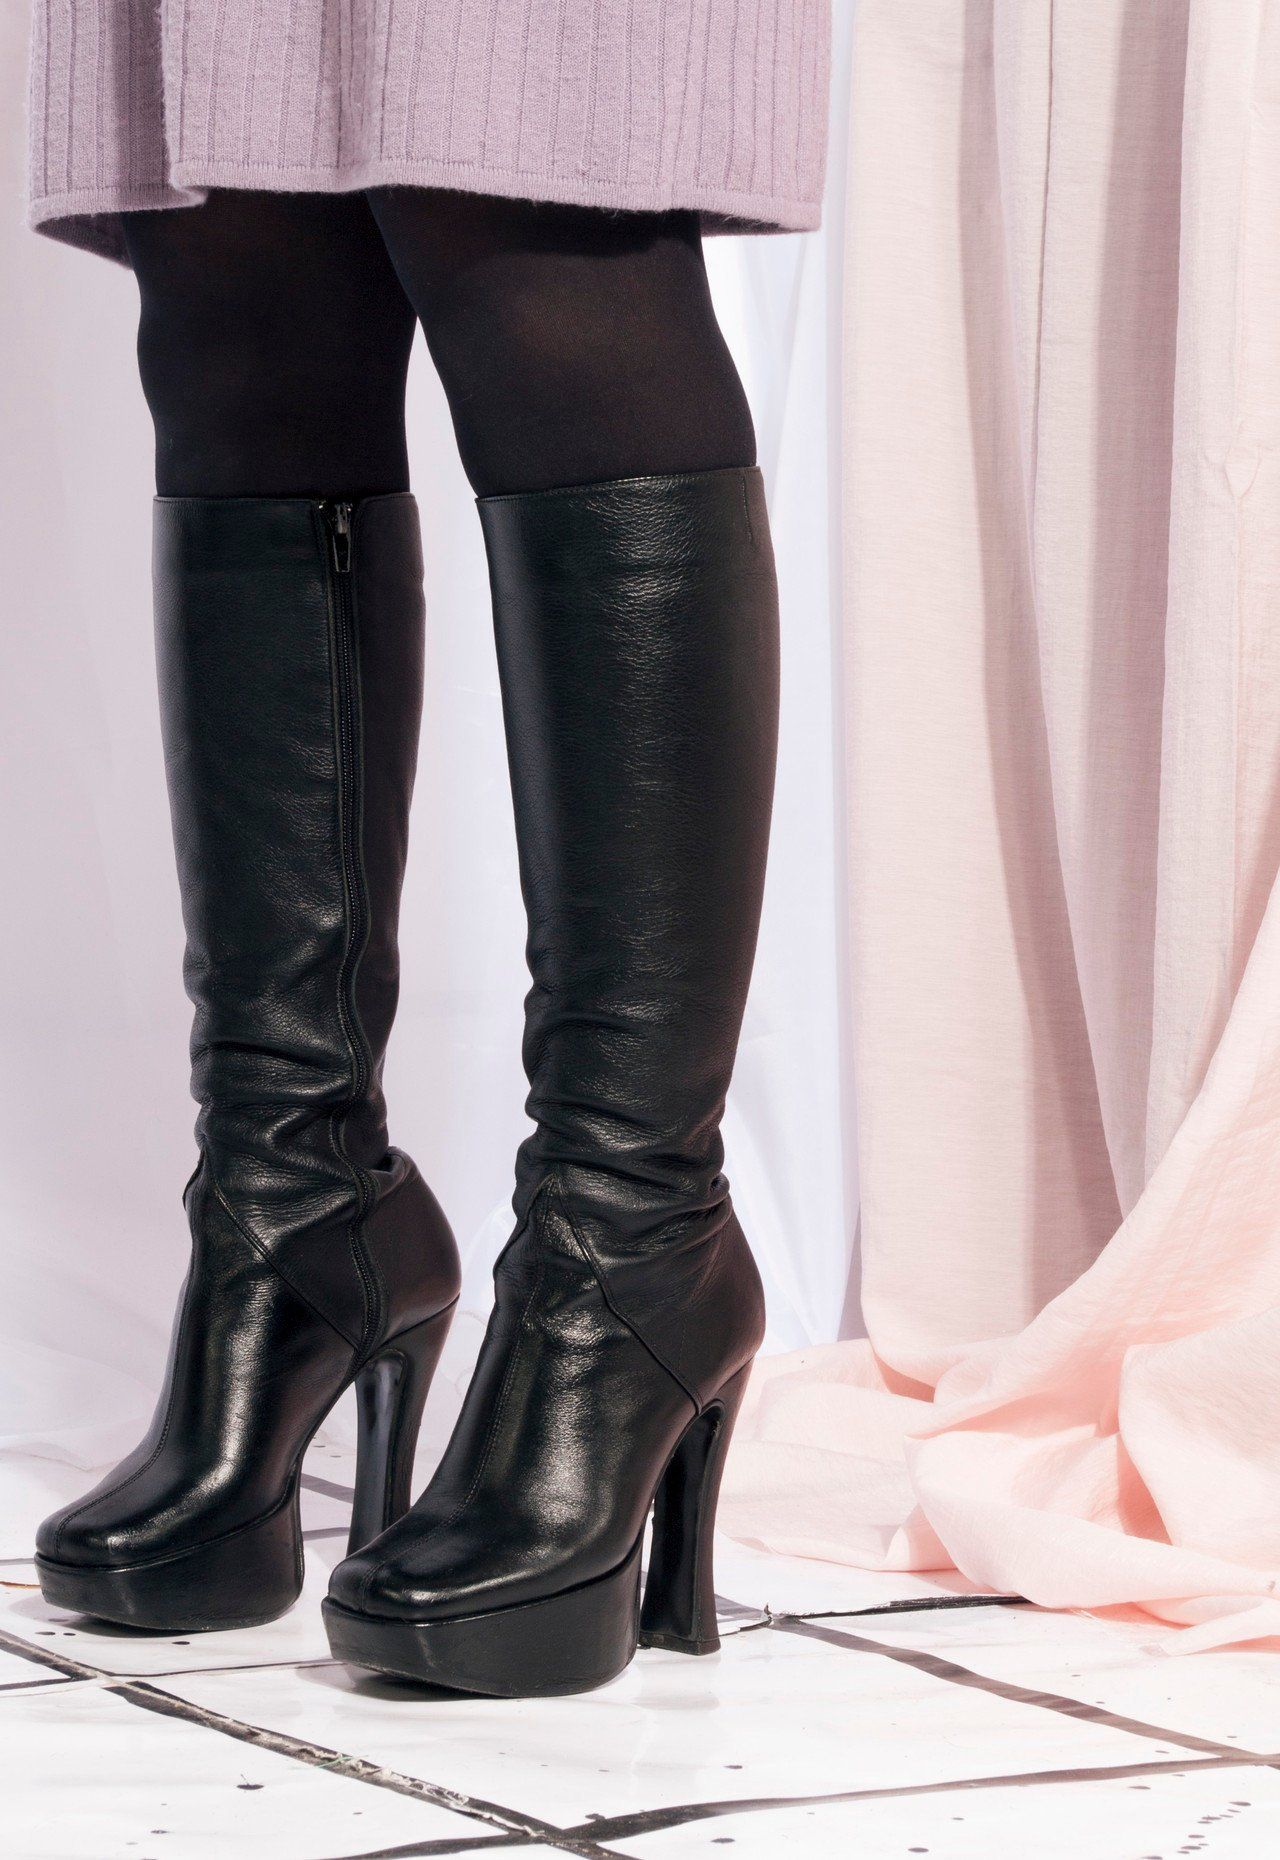 Details about  /Women Knee-High Boots Patent Leather Chunky Heel Riding Booties Combat Shoes Zip